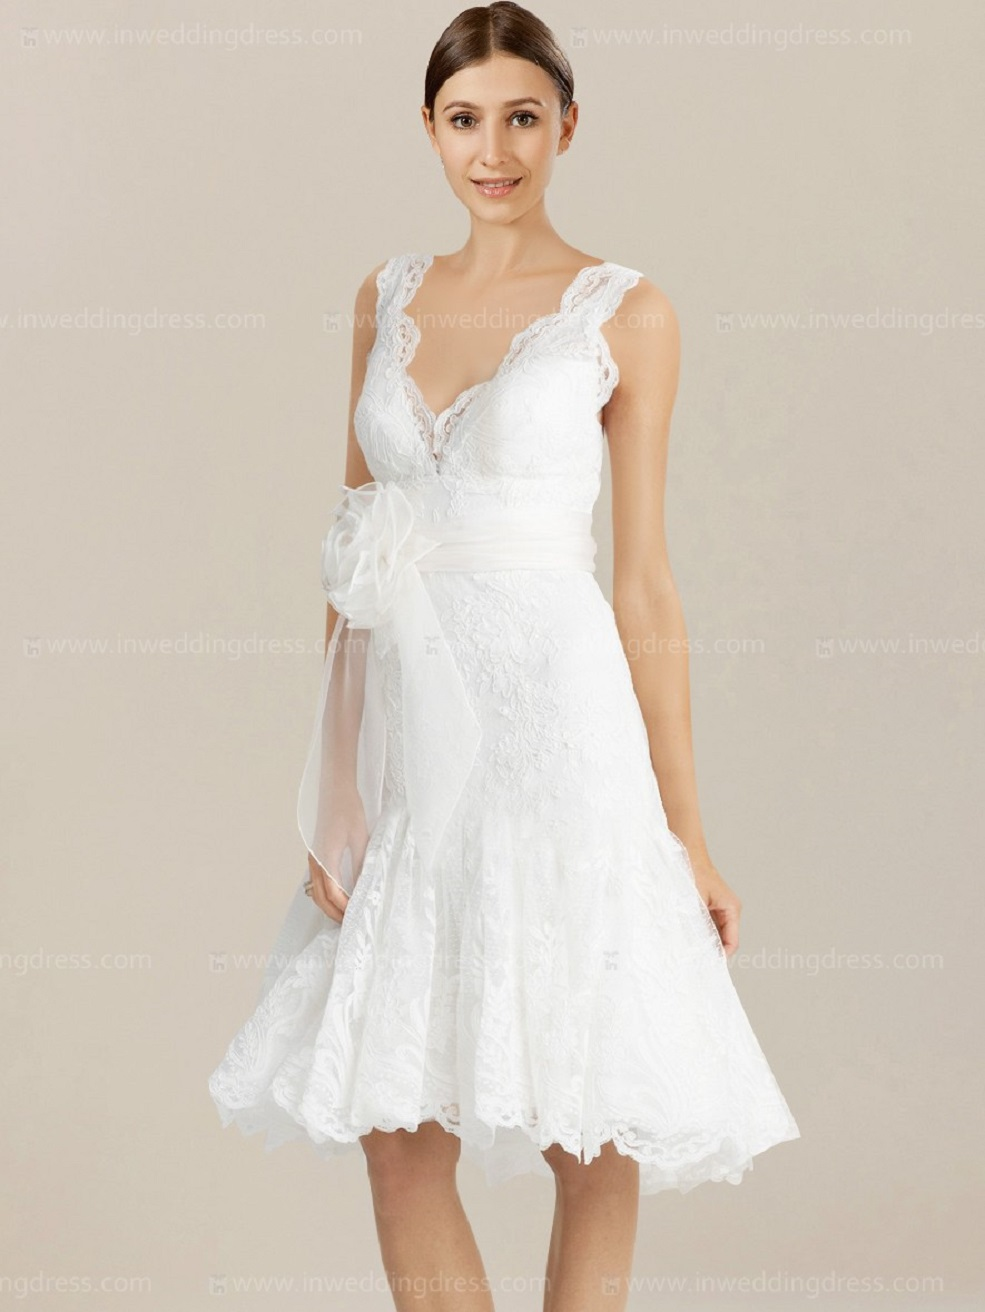 Elegant Casual Beach Wedding Dresses